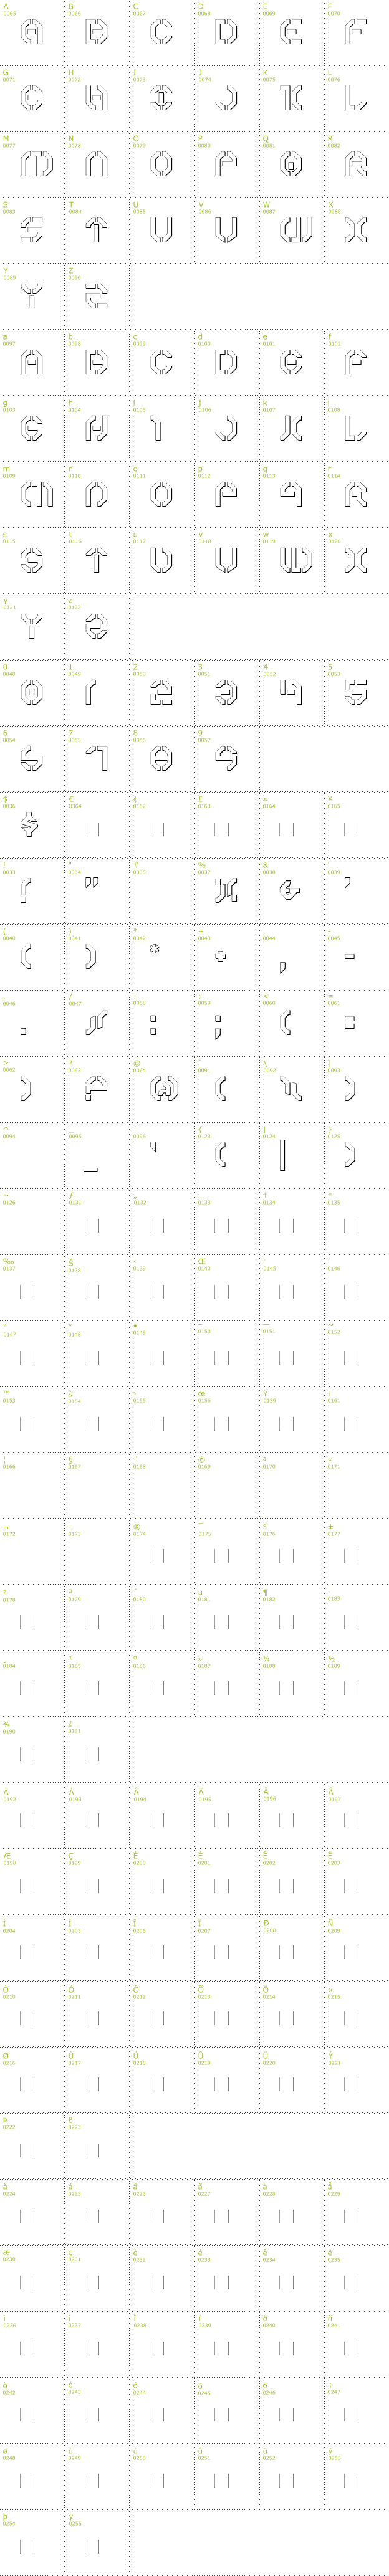 Full CharMap: Year 3000 Outline font